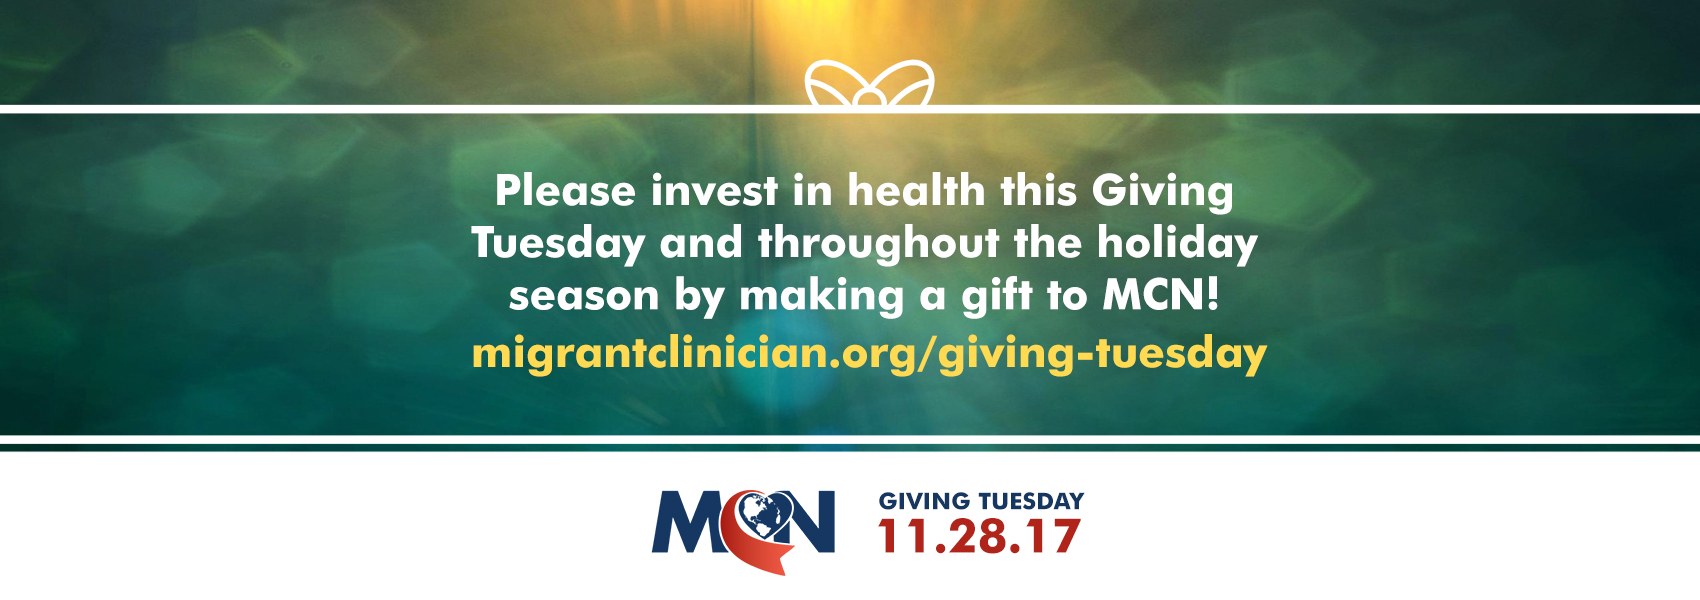 Invest in Health by making a gift to MCN!